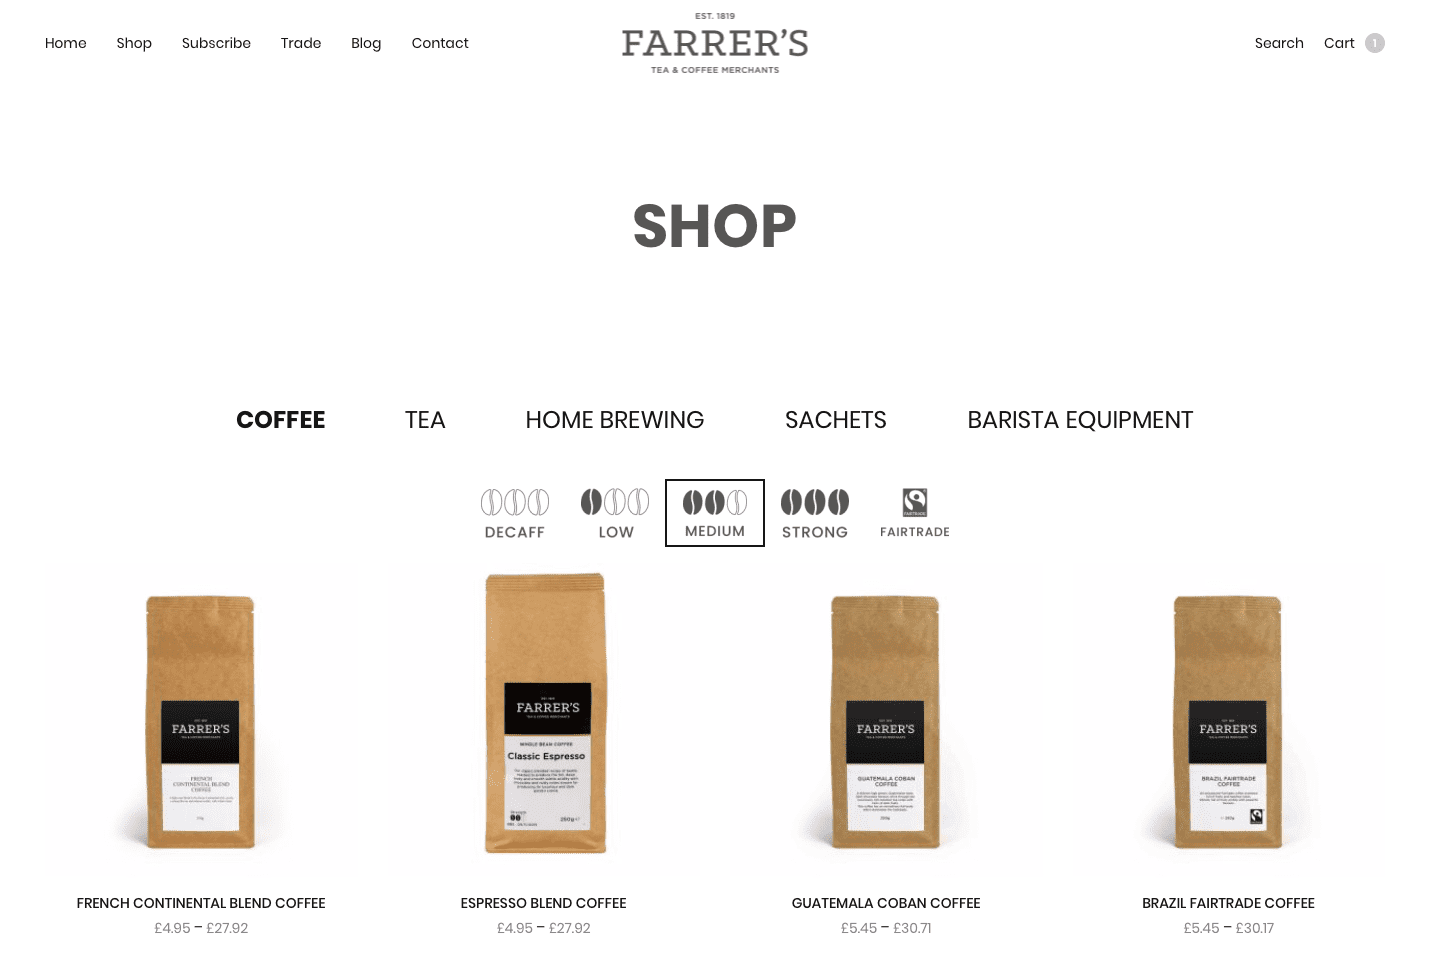 farrers-coffee-shop